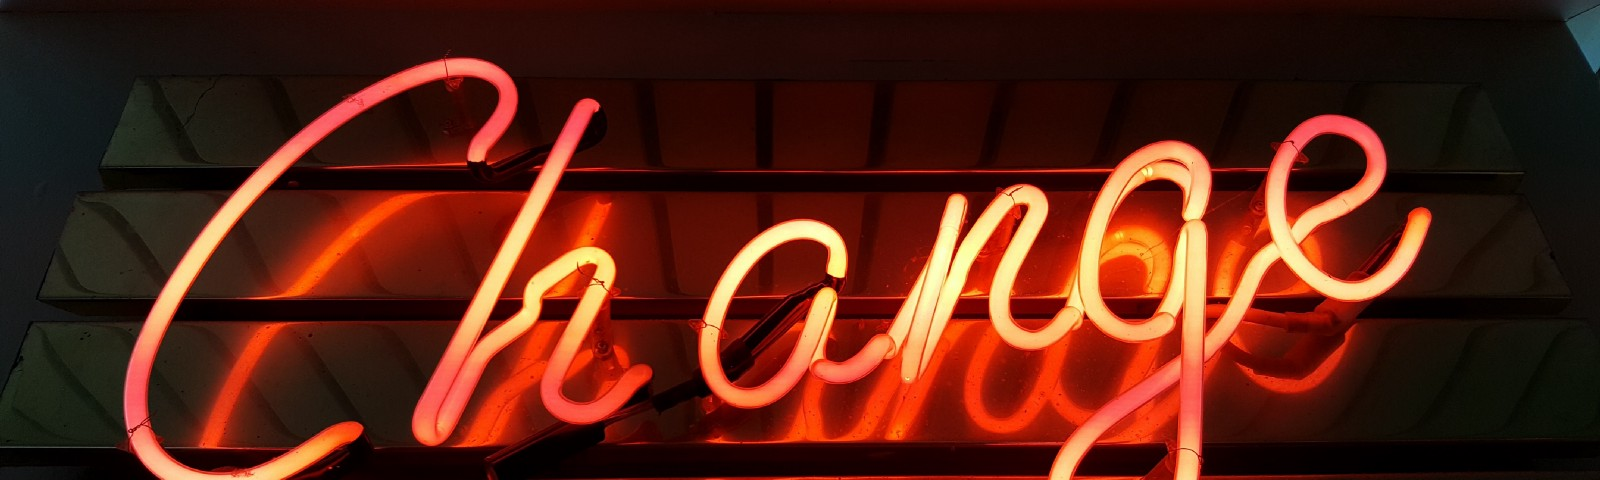 """Neon sign that reads """"Change"""""""